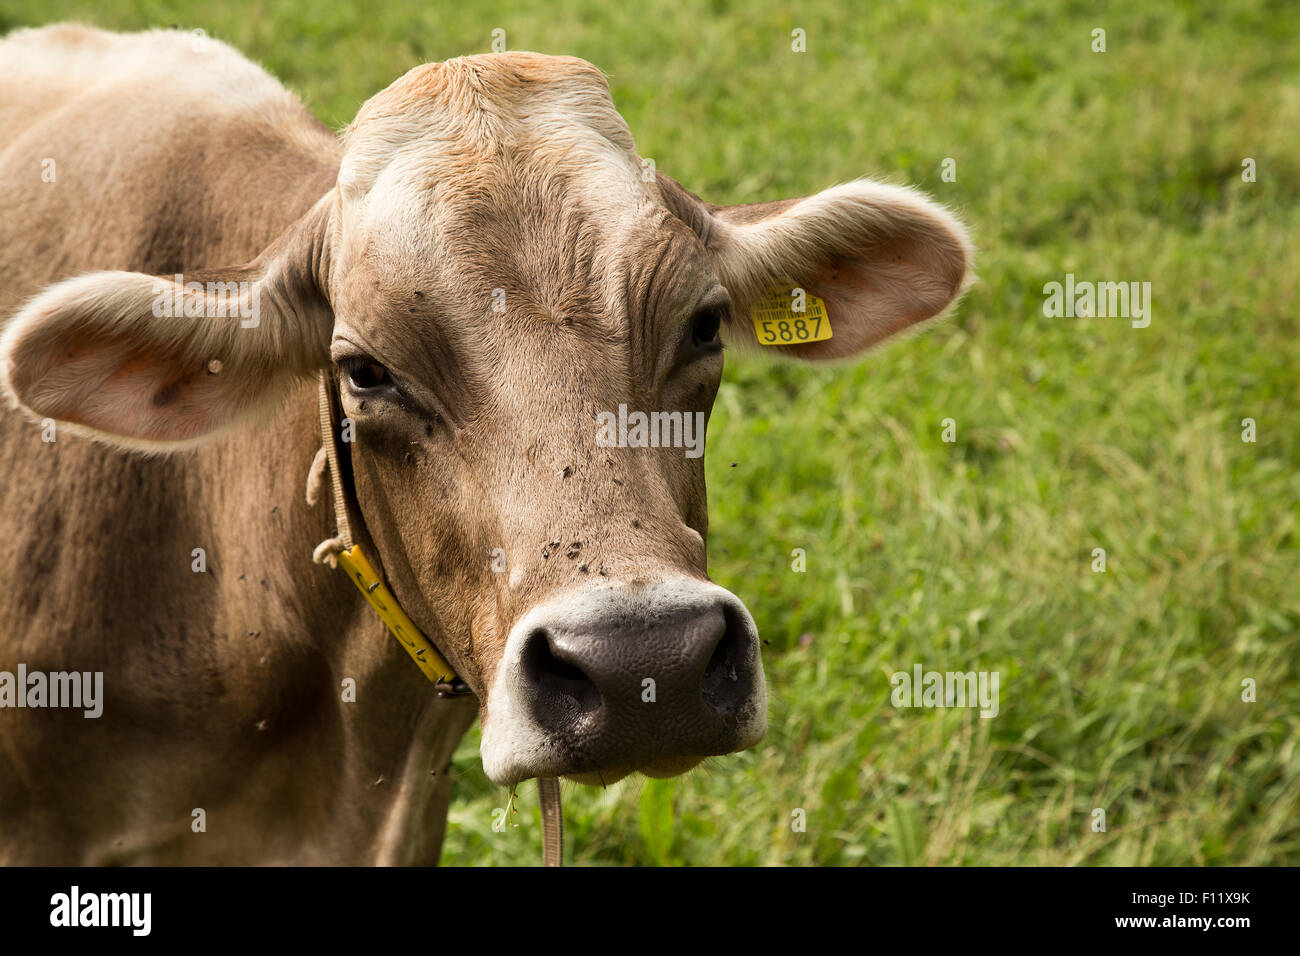 Cow in Vaduz Liechtenstein - Stock Image